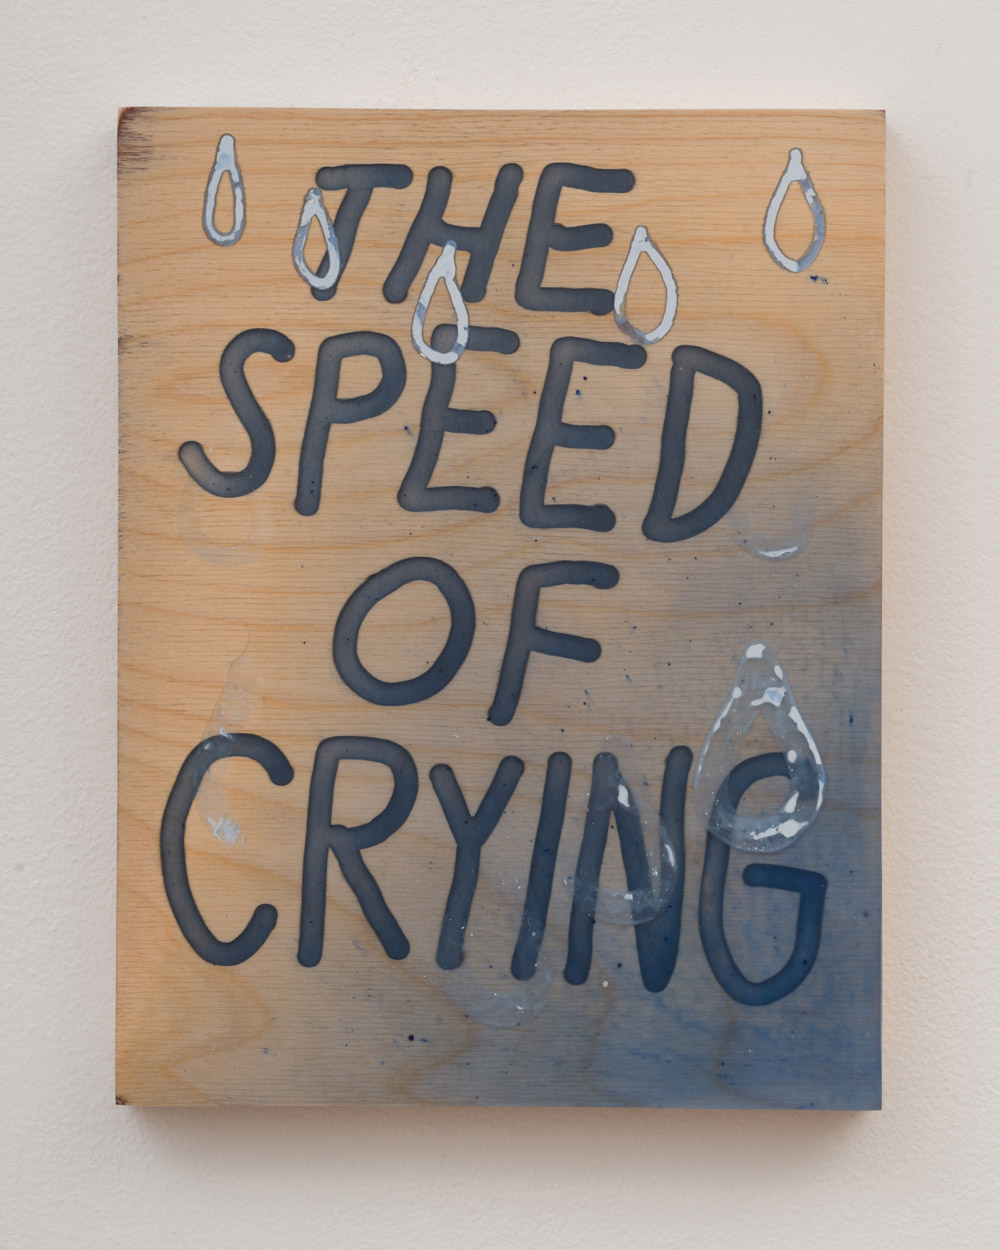 """<p><span class=""""name"""">Tommy Coleman</span><br><em>The Speed of Crying</em><span class='media'>UV resistant epoxy resin, modeling epoxy, and pigment on panel</span>11 x 8.5 in (27.9 x 21.6 cm)<br>2018<br><a class='inquire' href='mailto:info@gildargallery.com?subject=Artwork Inquiry TCOL0003&body=I am interested in finding out more about The Speed of Crying by Tommy Coleman'>Inquire</a></p>"""